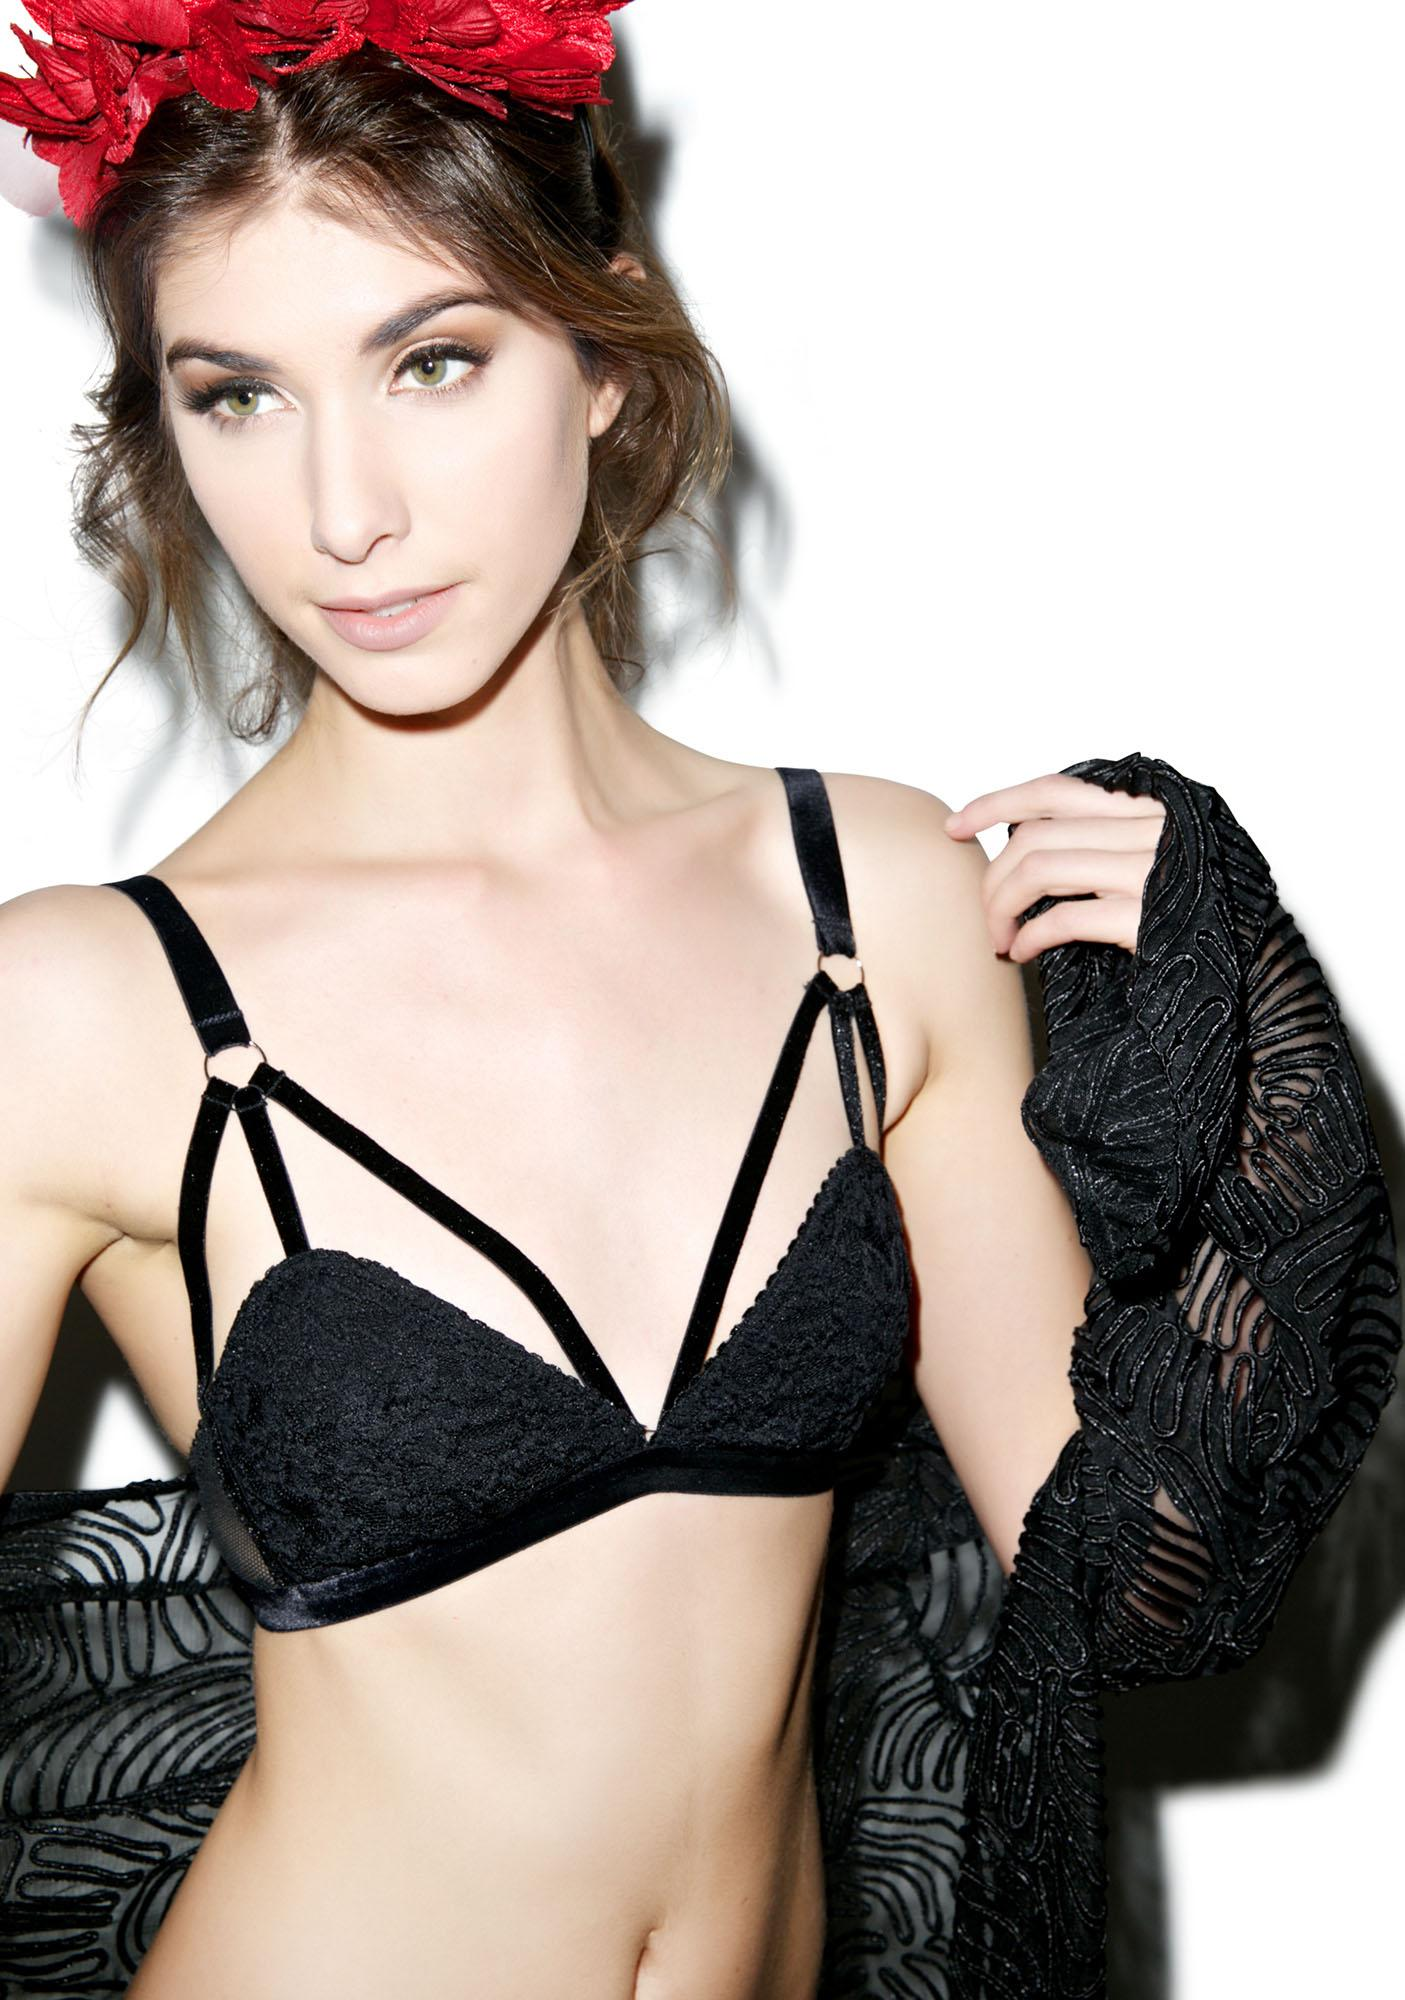 Sneak A Peak Lace And Fishnet Bra Set